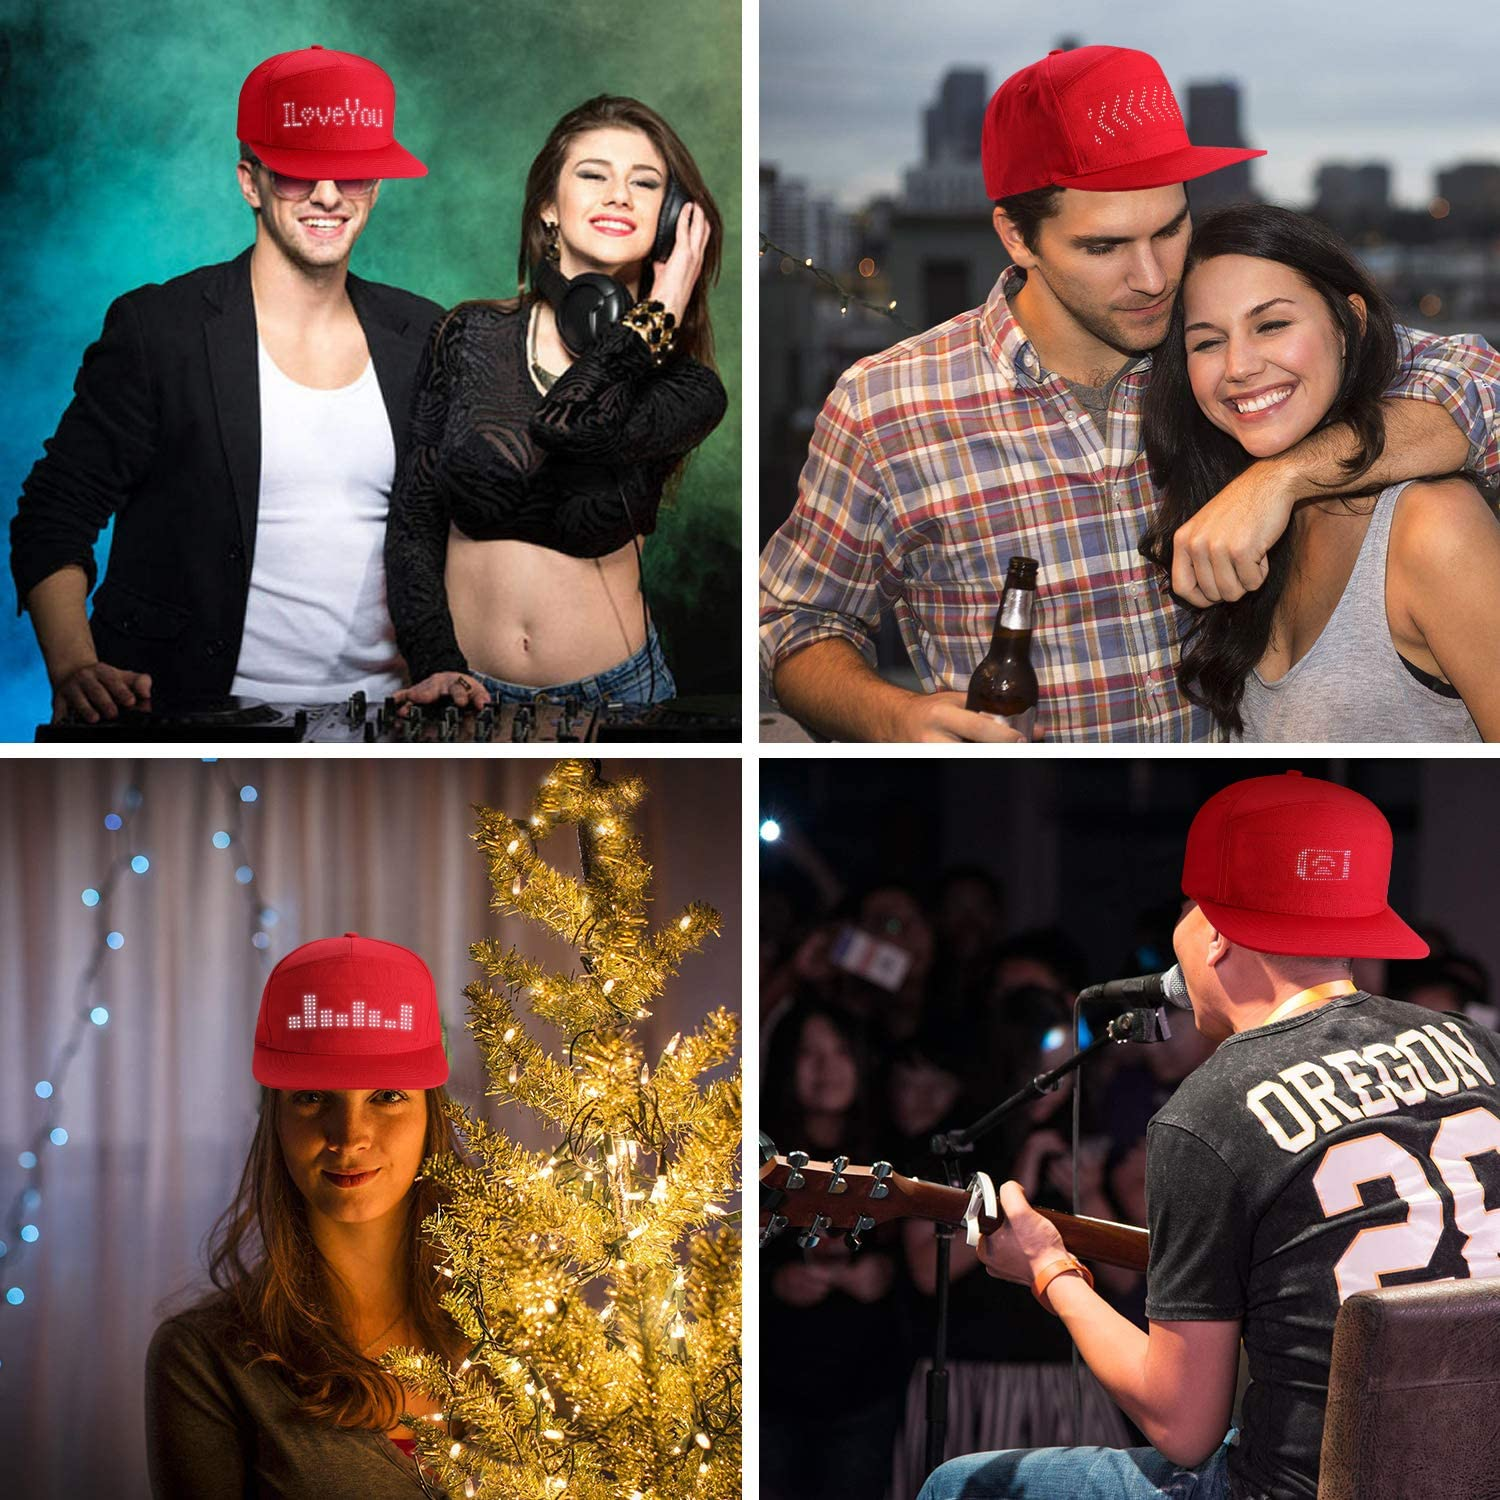 ALAVISXF LED Hats LED Display Message Caps for Christmas Party Birthday Supplies Hat Red